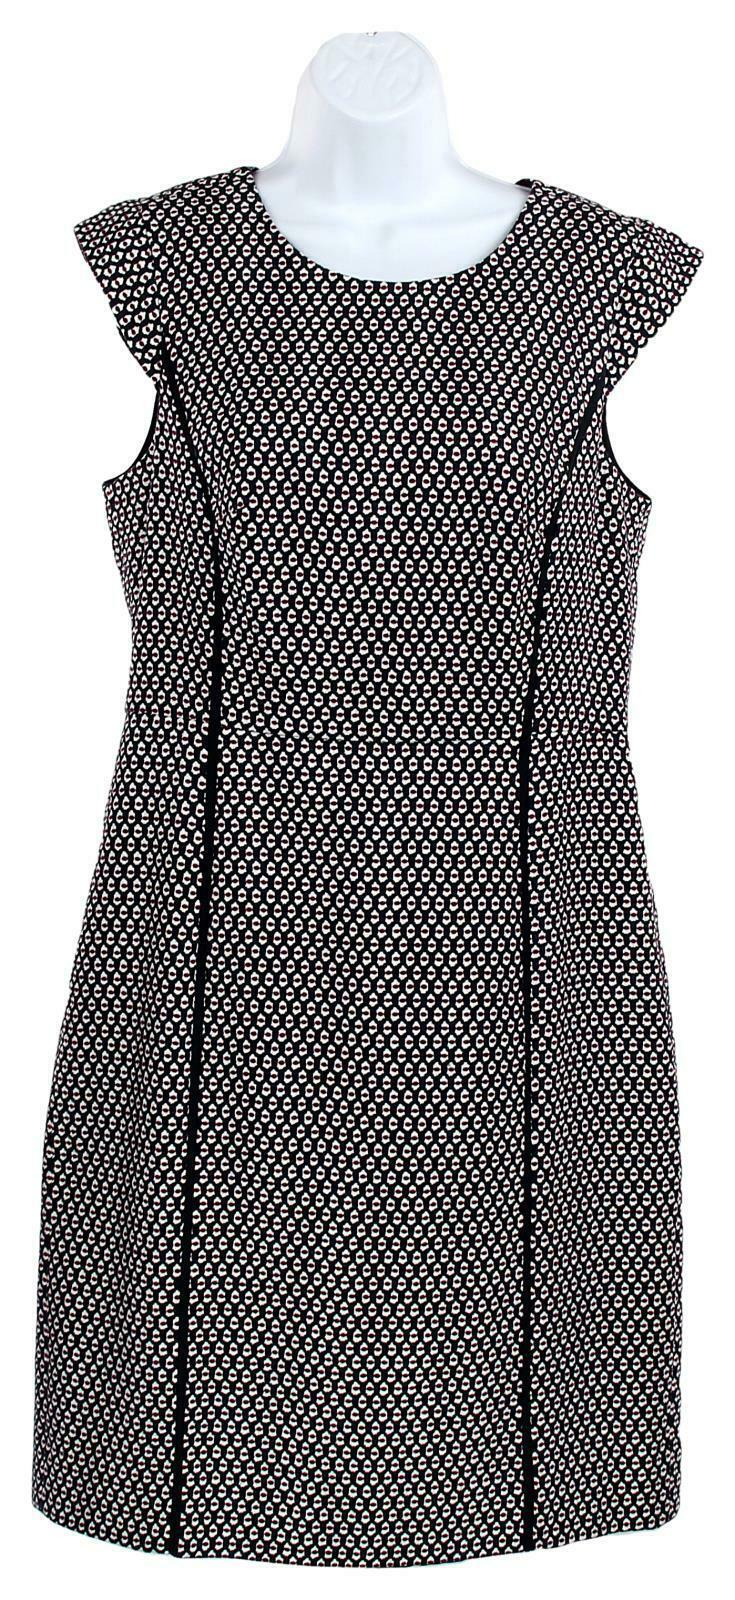 Primary image for J Crew Women's Cap Sleeve Dress in Printed Matelasse Wear to Work 0 J7992